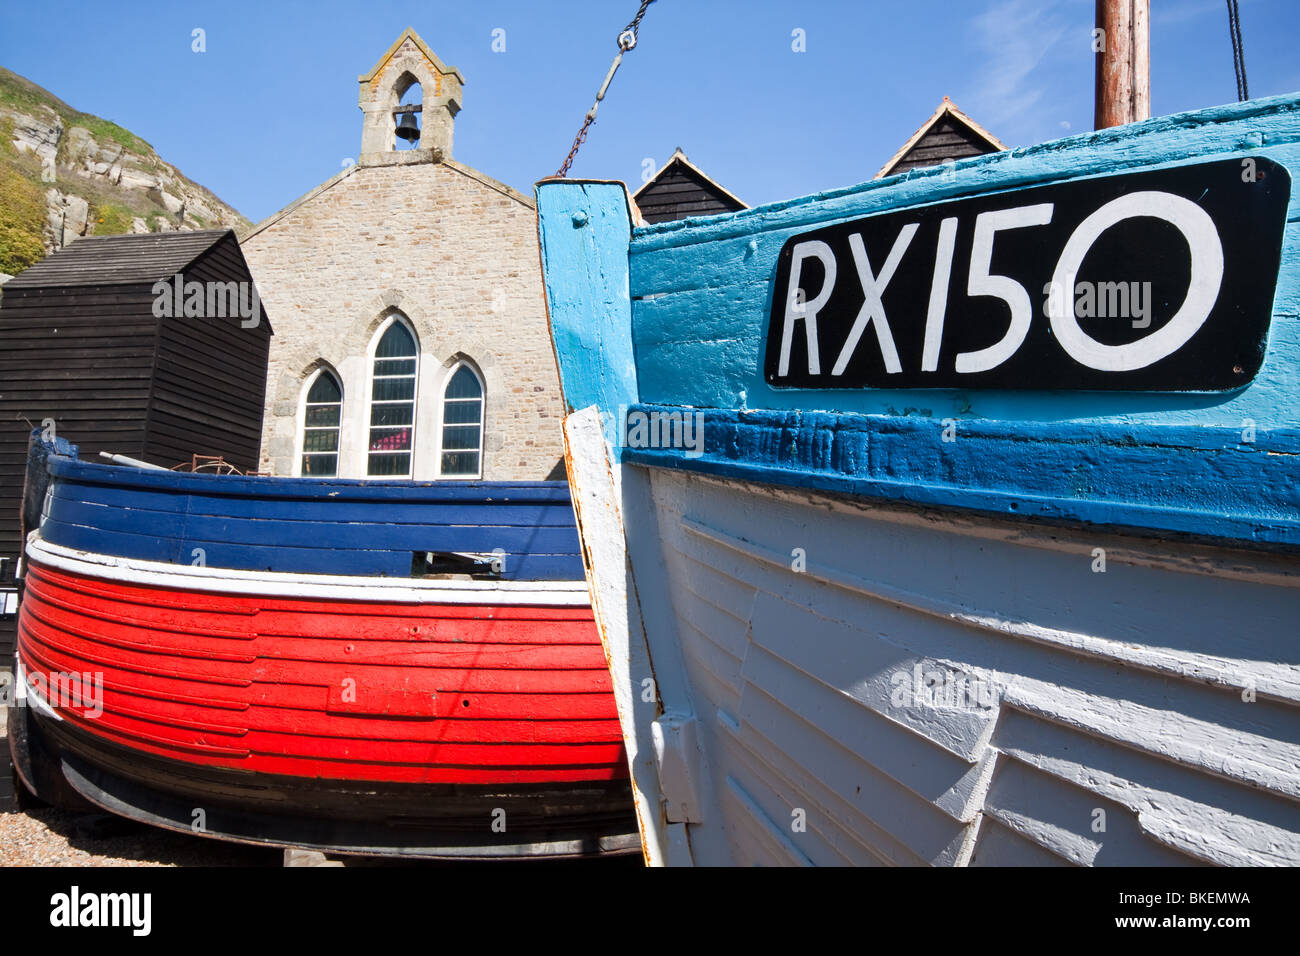 Fishing Boats and Net Hut in Hastings Old Town - Stock Image